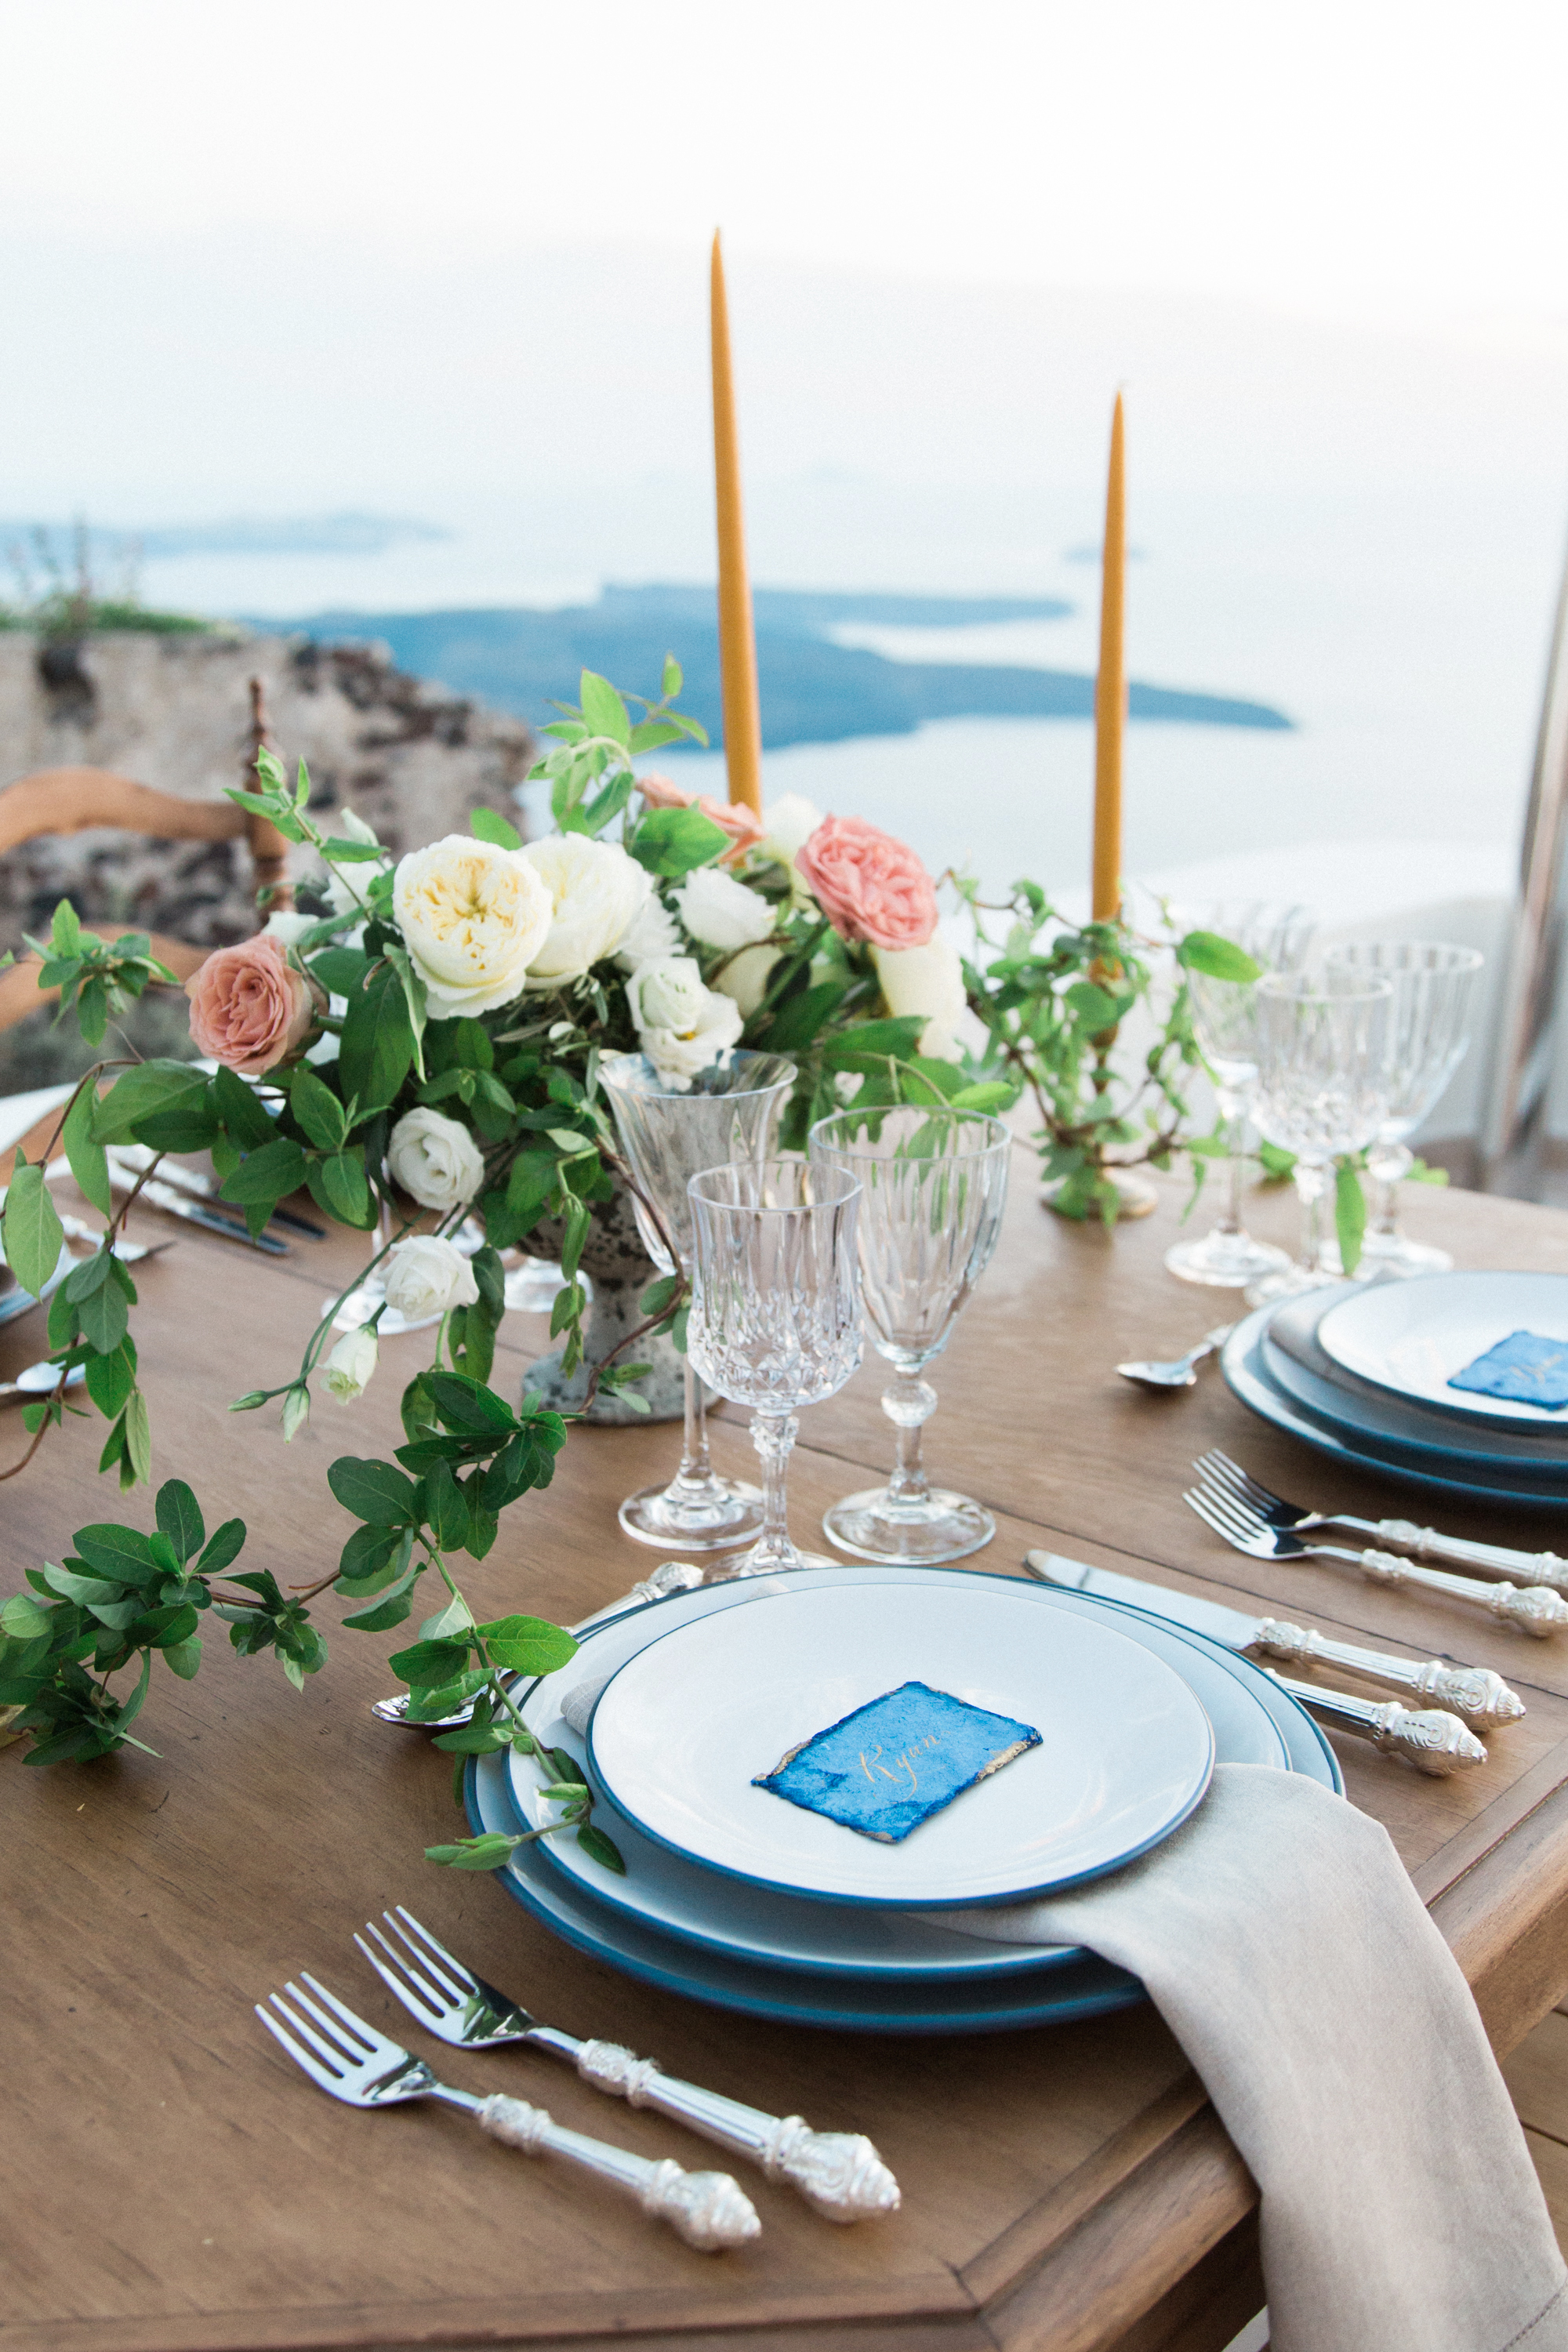 trynhphoto-photographer-Santorini-Mykonos-Italy-France-wedding-photographer-destination-weddingplanner-29.jpg